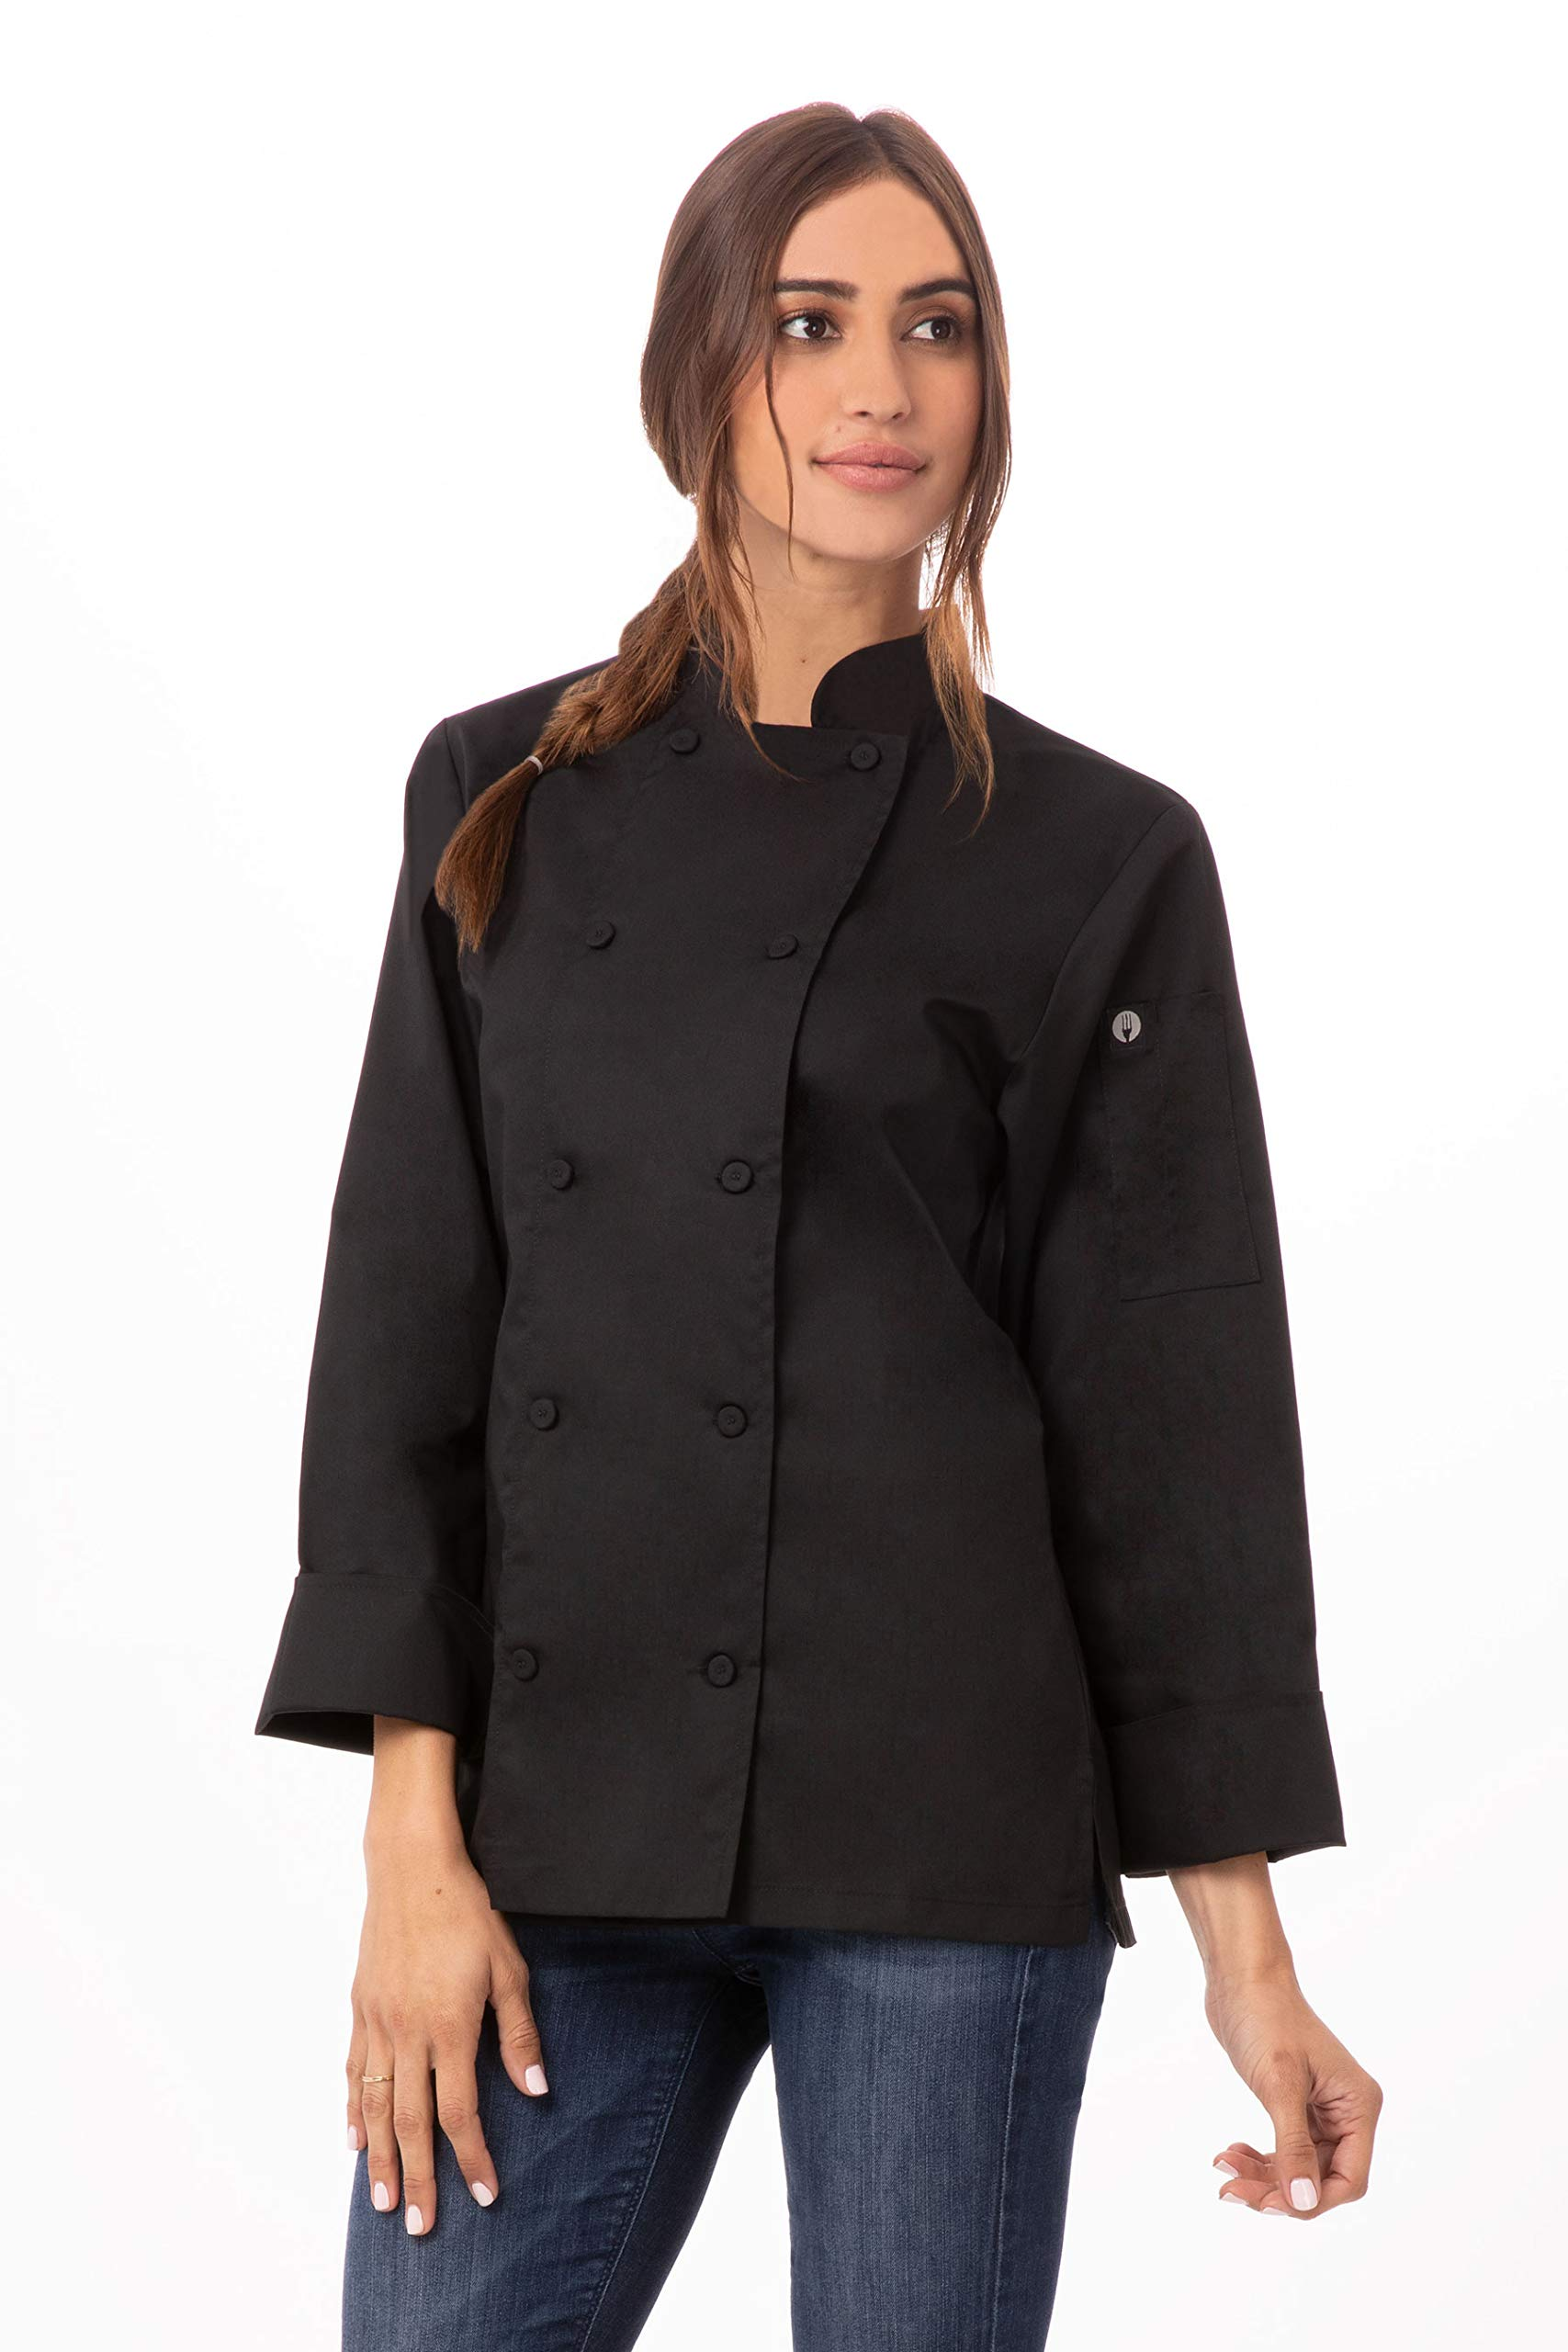 Chef Works Women's Sofia Chef Coat, Black, Medium by Chef Works